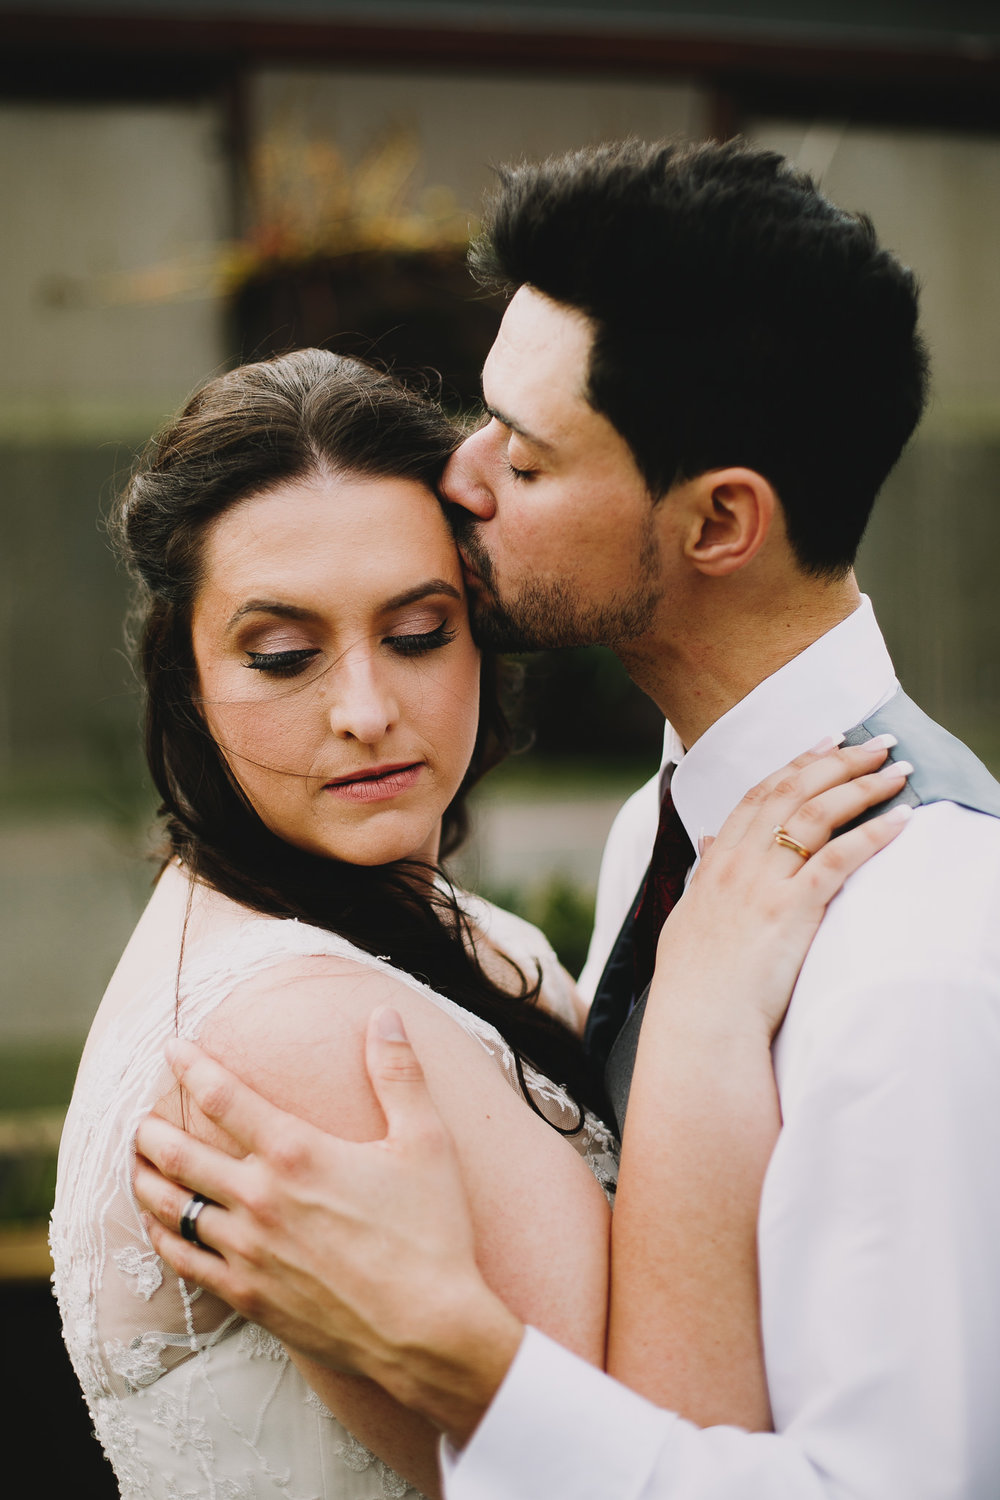 Archer Inspired Photography Shelby and Ben Wedding Sally Tomatoes NorCal Rohnert Park California-78.jpg